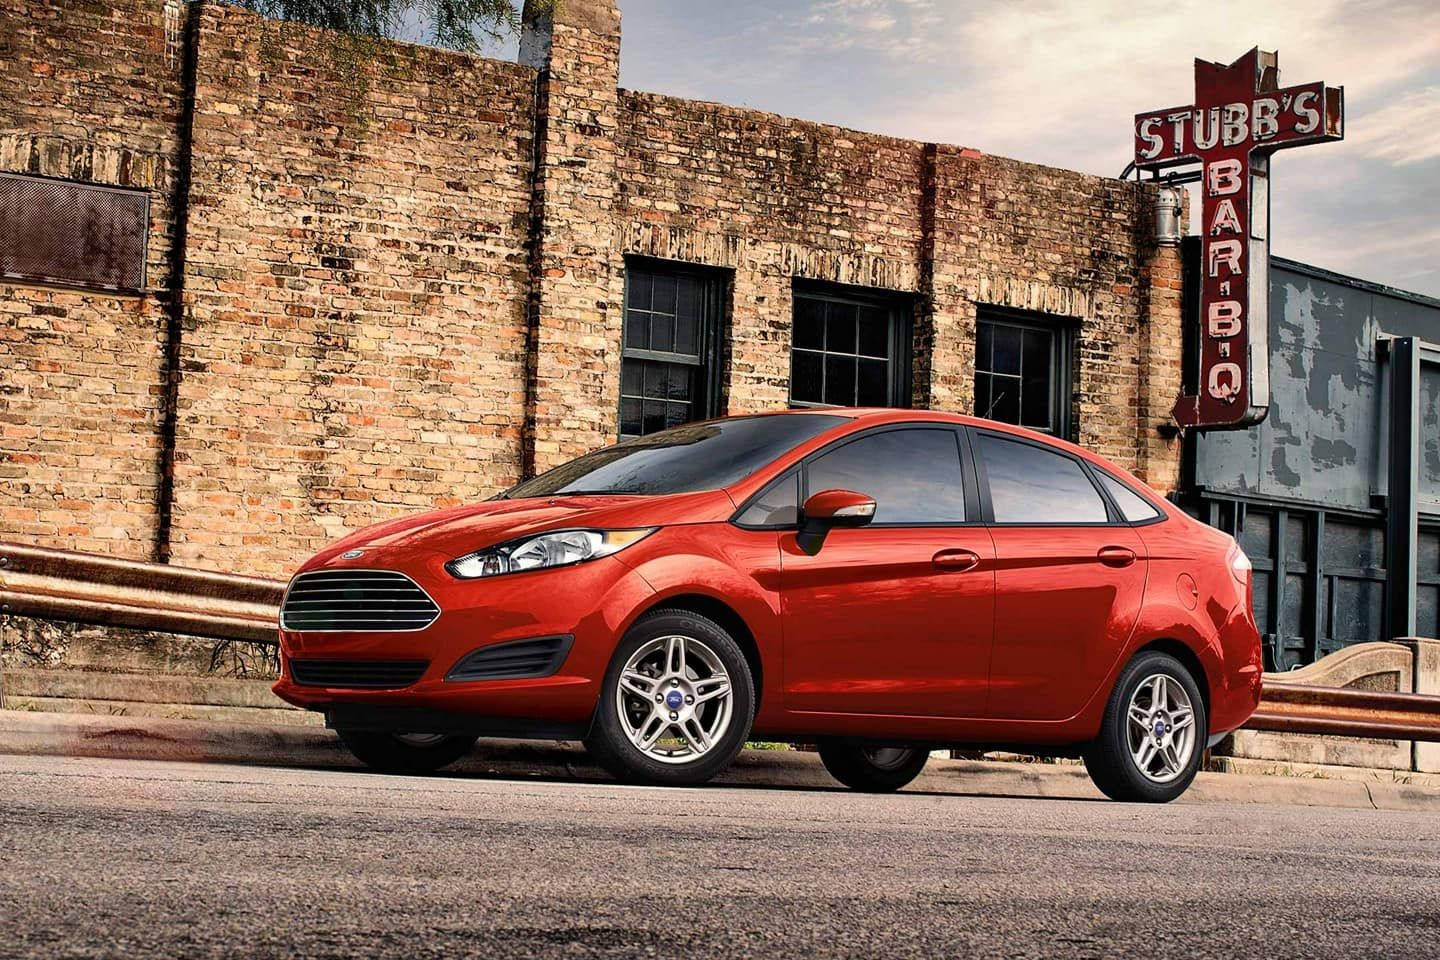 The 2019 Ford Fiesta A Small Car That S Big On Value With A Long List Of Features And Colors Available You Can Make It Your Own Ford Fiesta 2019 Ford Ford